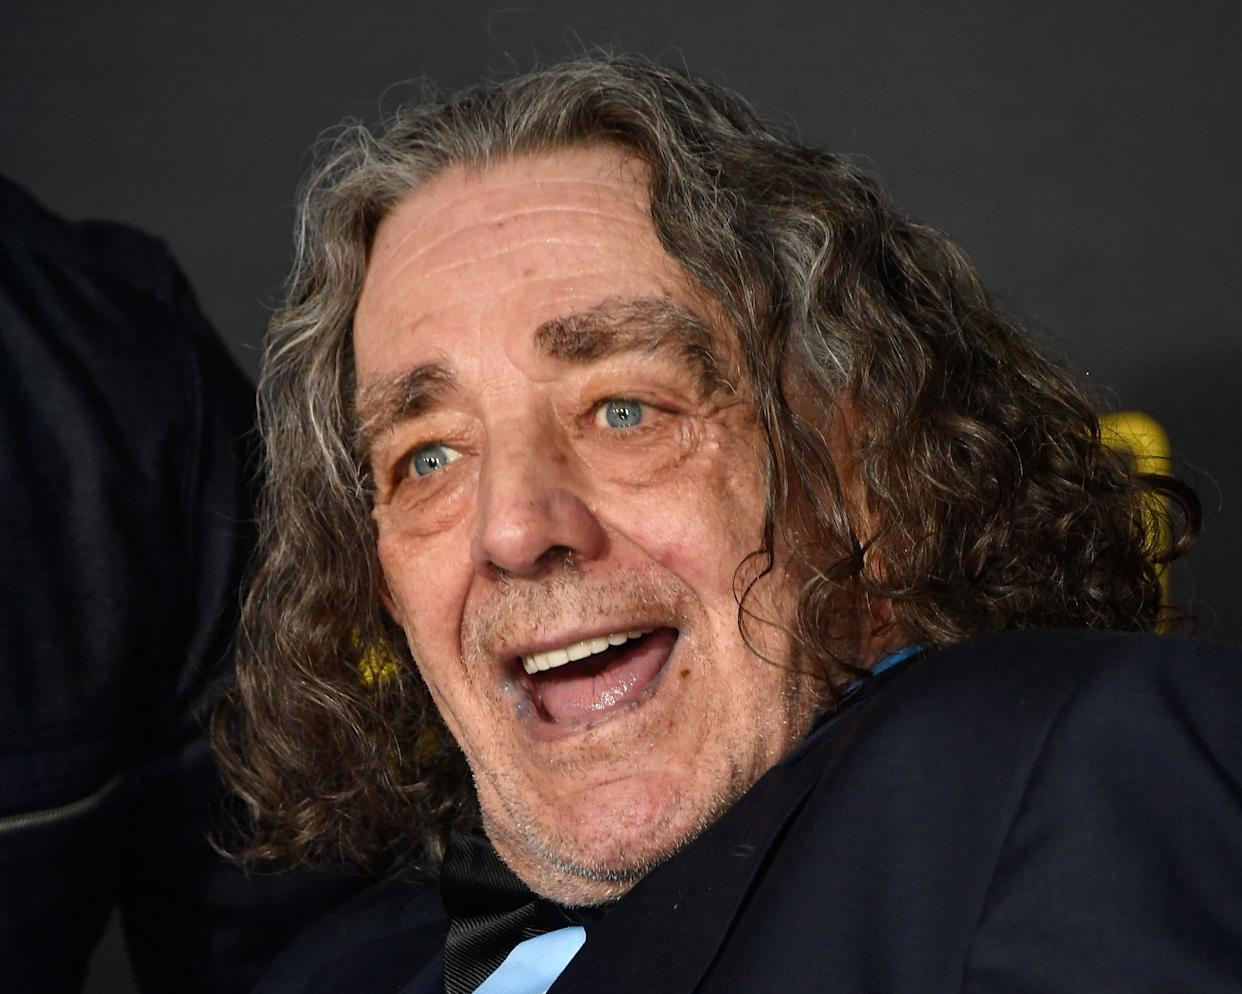 """Actor Peter Mayhew, who played Chewbacca in the """"Star Wars"""" series, diedApril 30, 2019 at the age of 74."""